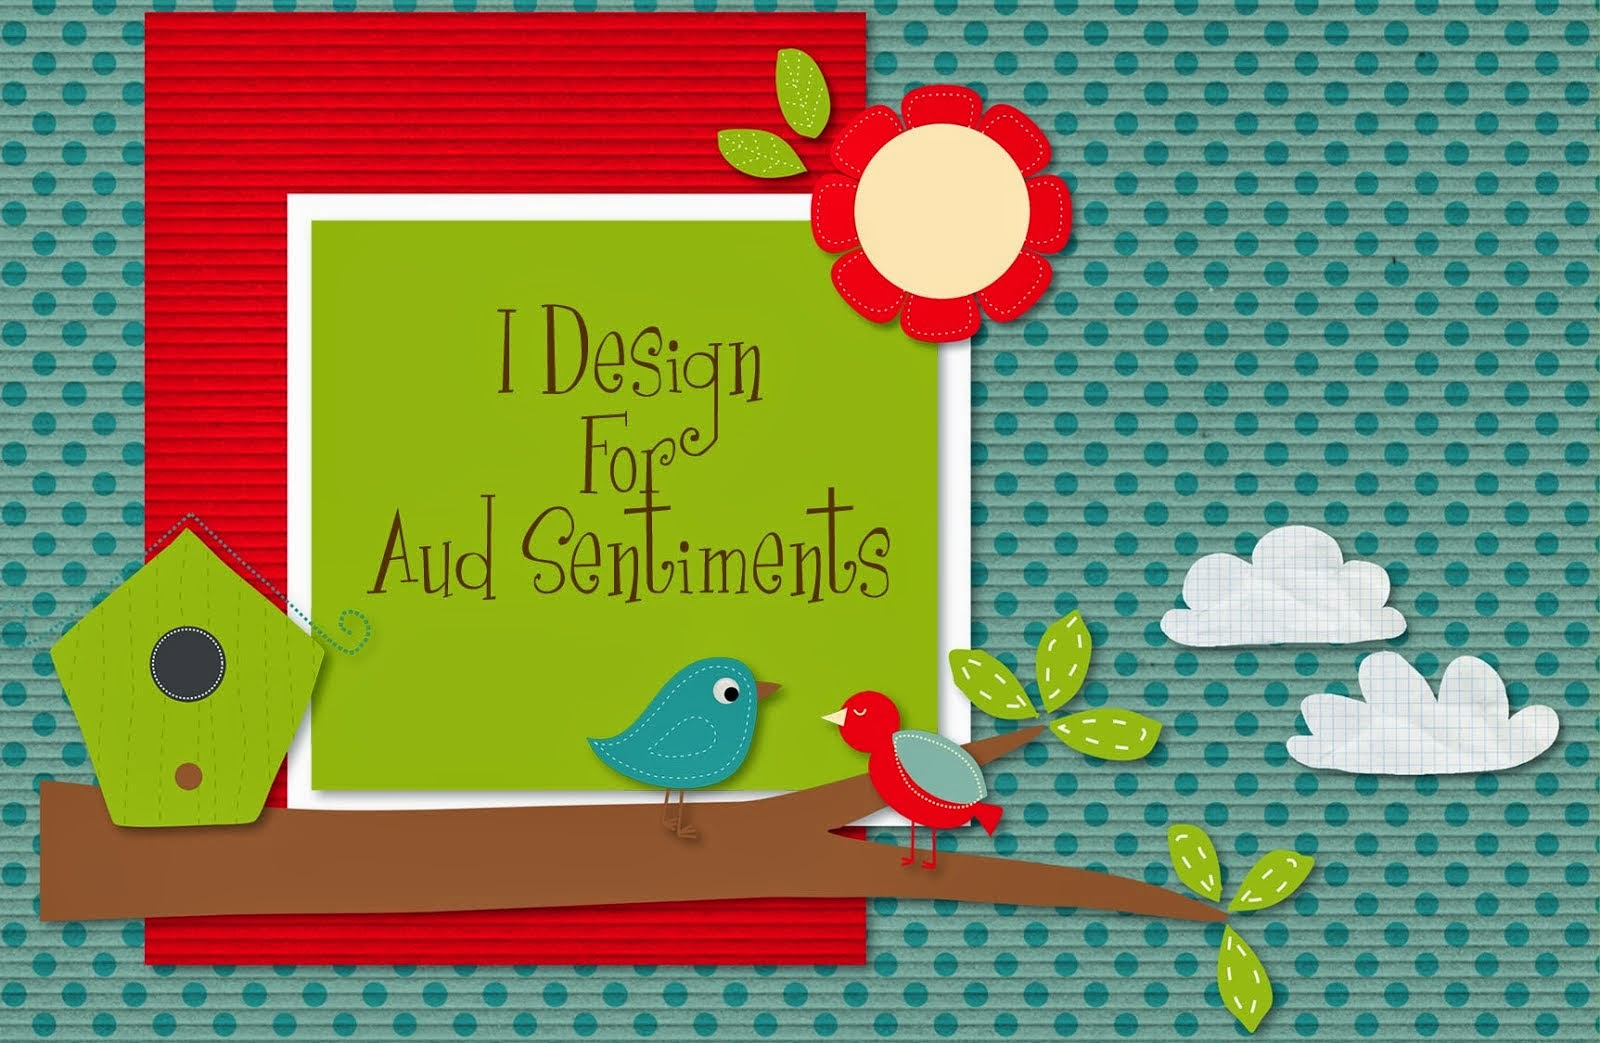 I'm Designing for Aud Sentiments